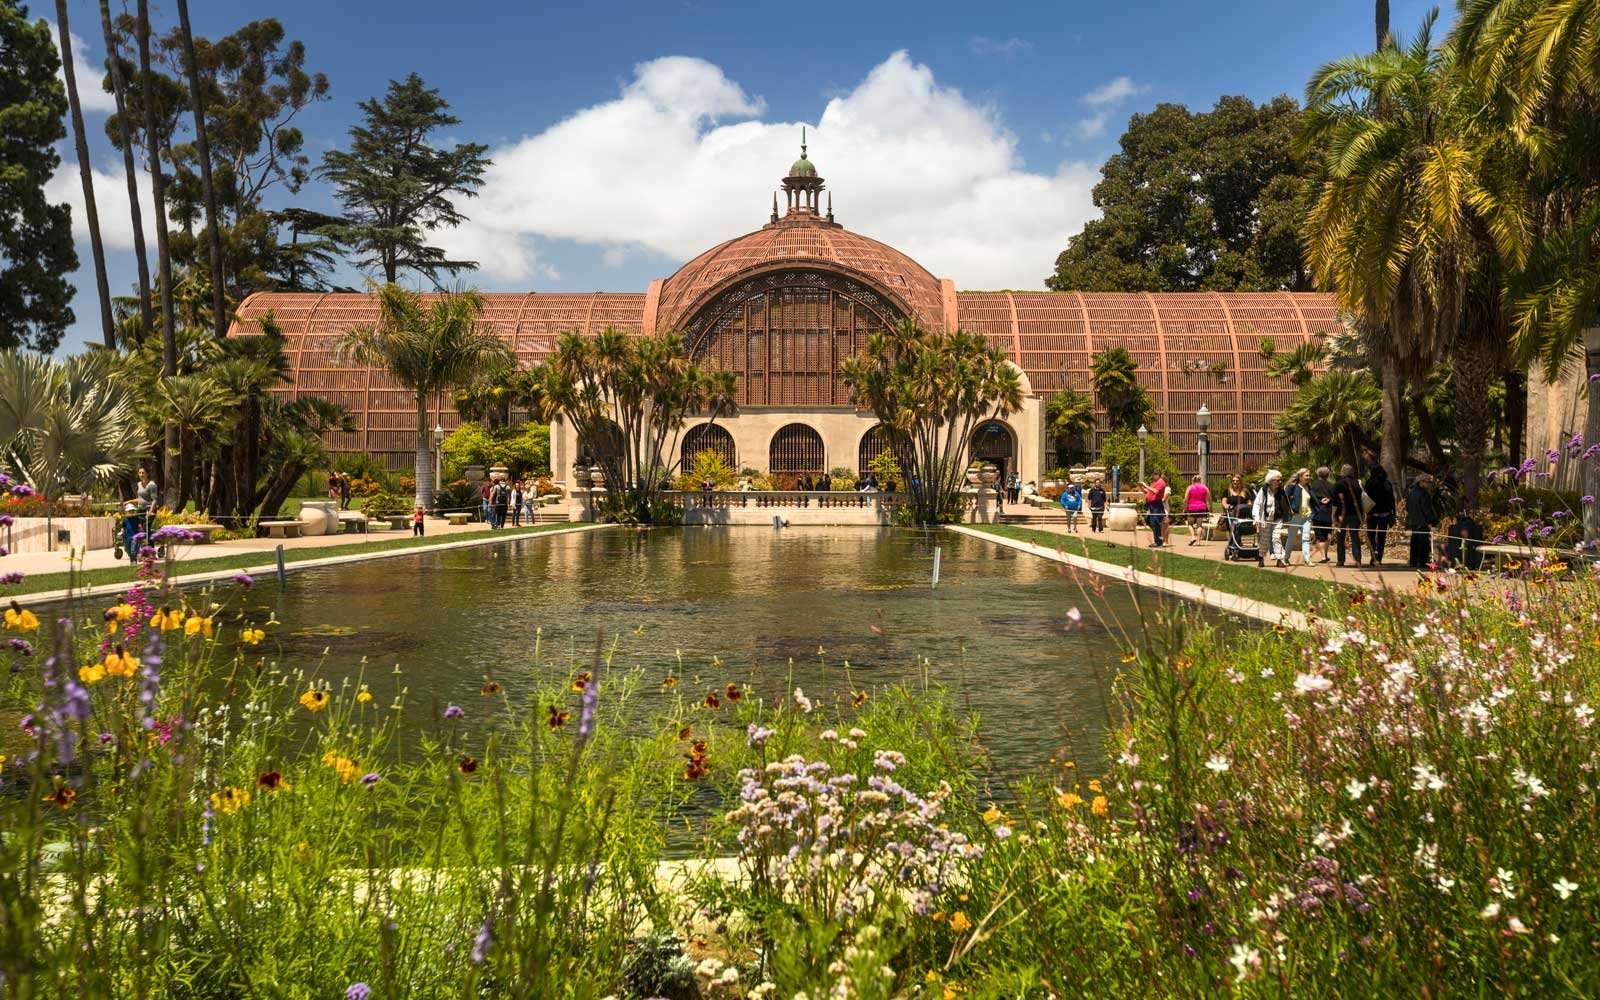 Balboa Park in San Diego, California